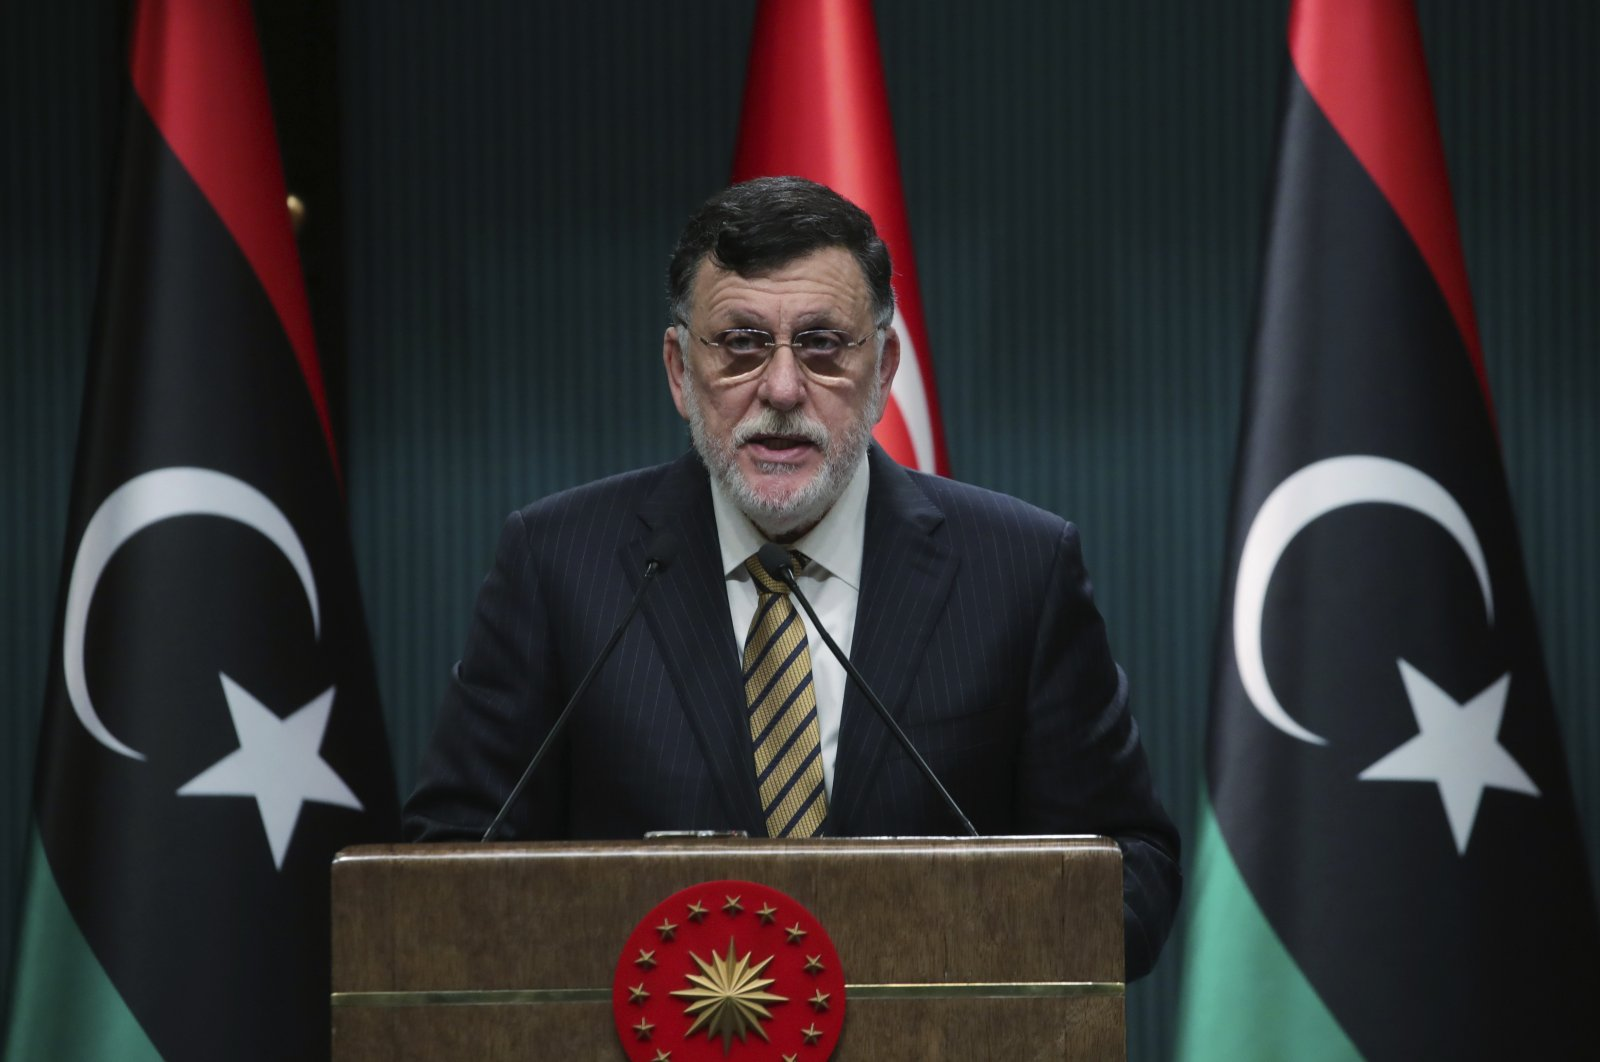 Fayez Sarraj, the head of Libya's internationally recognized Government of National Accord (GNA), speaks at a news conference in Ankara, Turkey, June 4, 2020. (AP Photo)